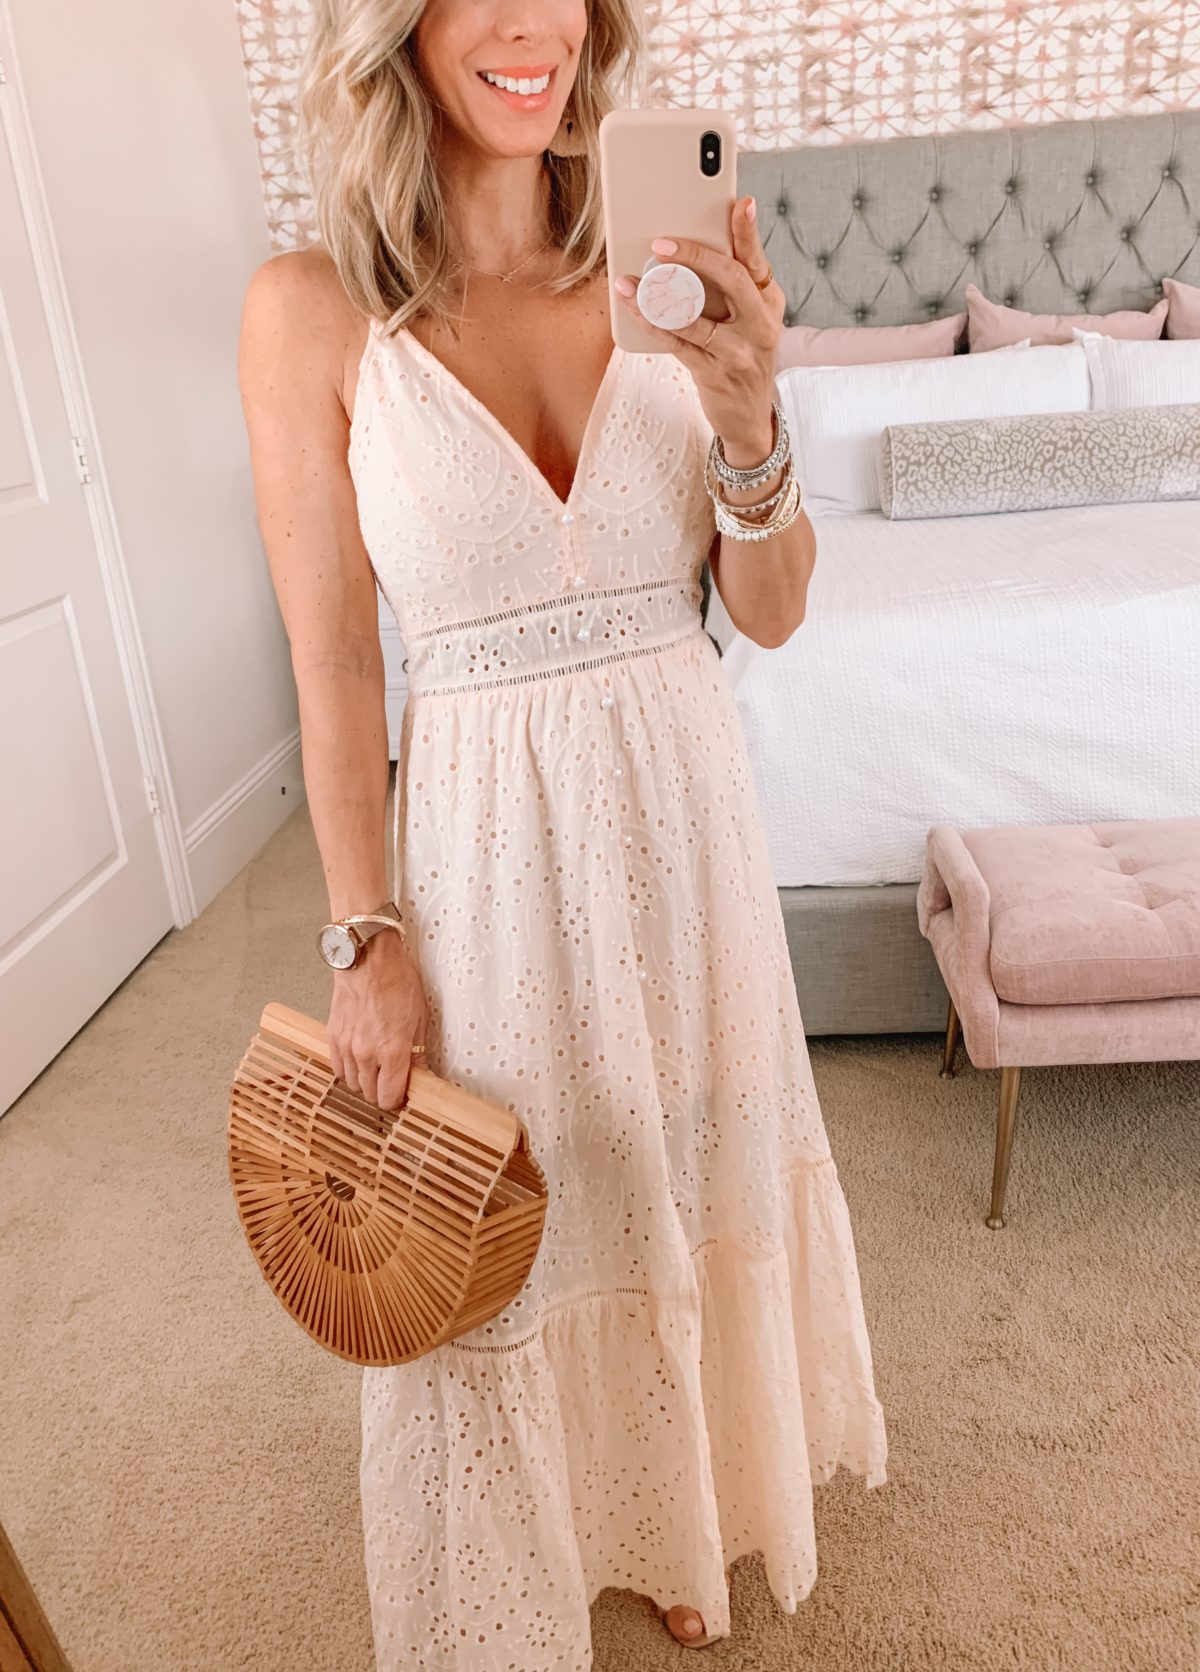 Amazon Fashion Faves, Pink Eyelet Maxi Dress, Bamboo Clutch and Sandals